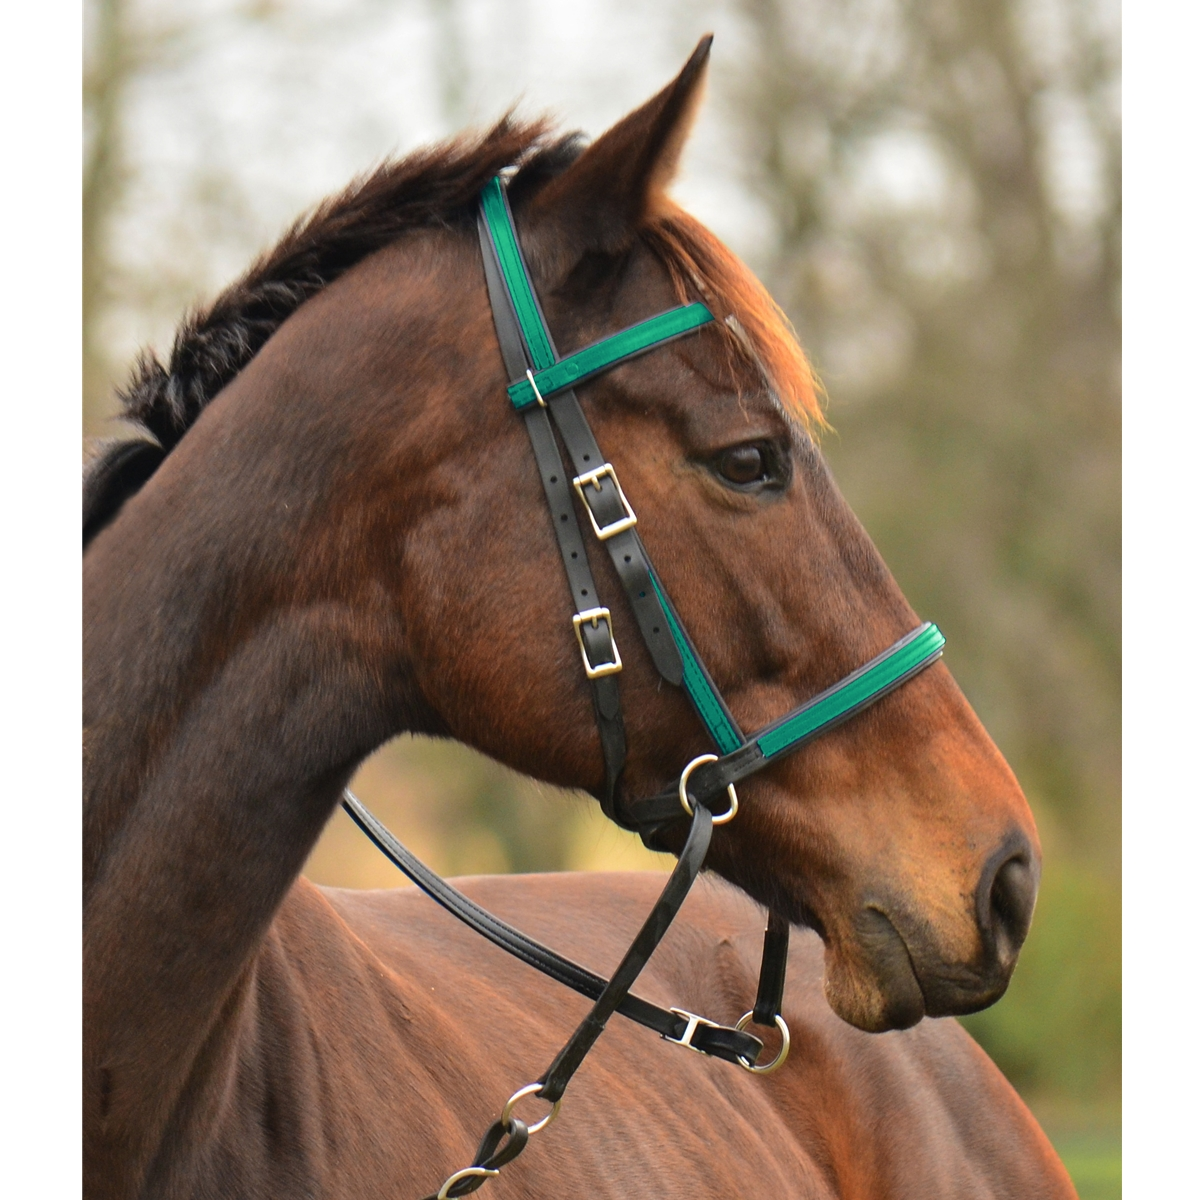 2 In 1 Bitless Bridle Made From Beta Biothane Any 2 Color